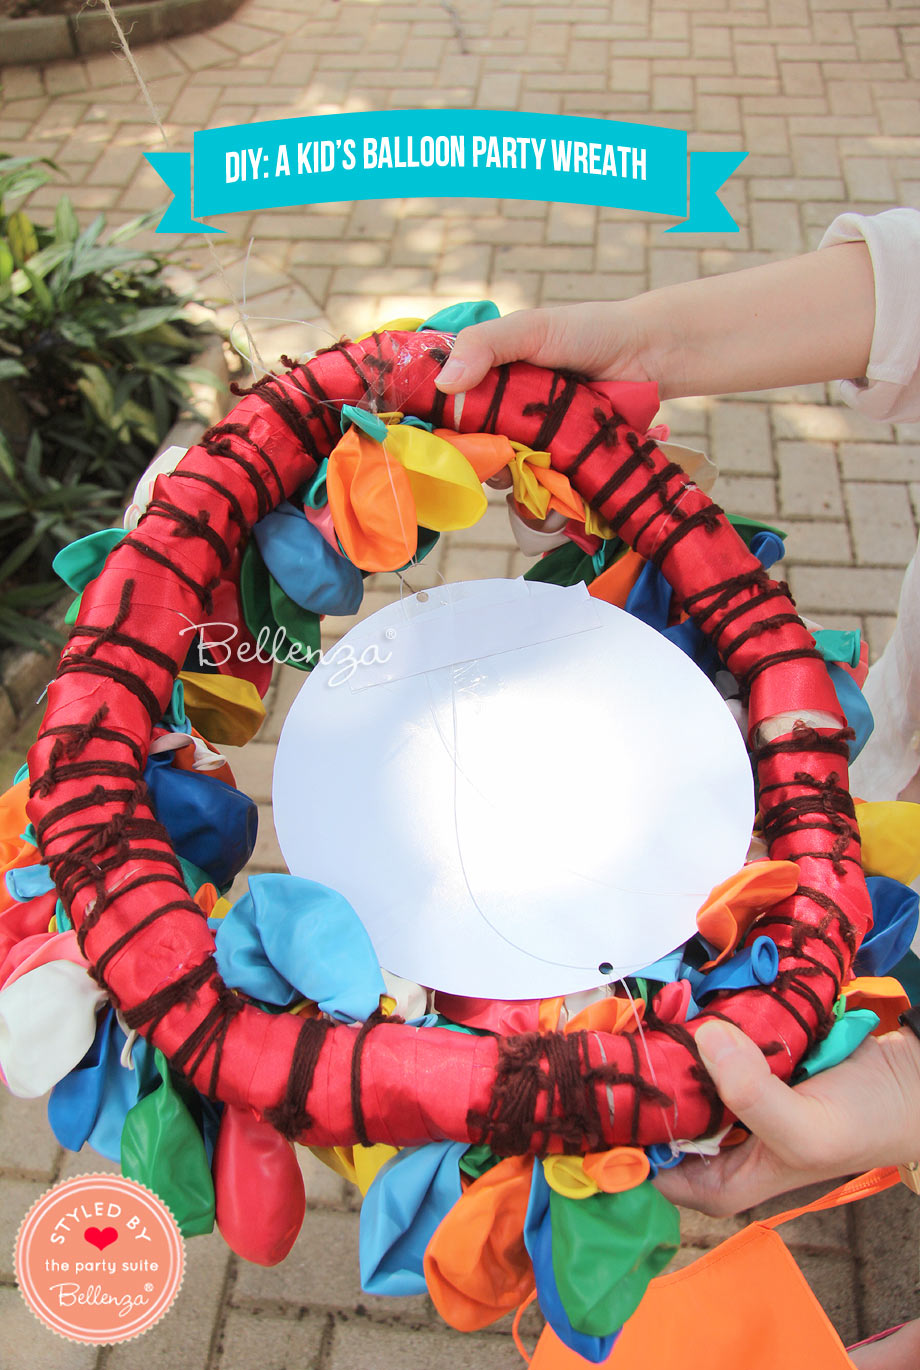 Begin tying the uninflated balloons one by one to the wreath form, using the string.